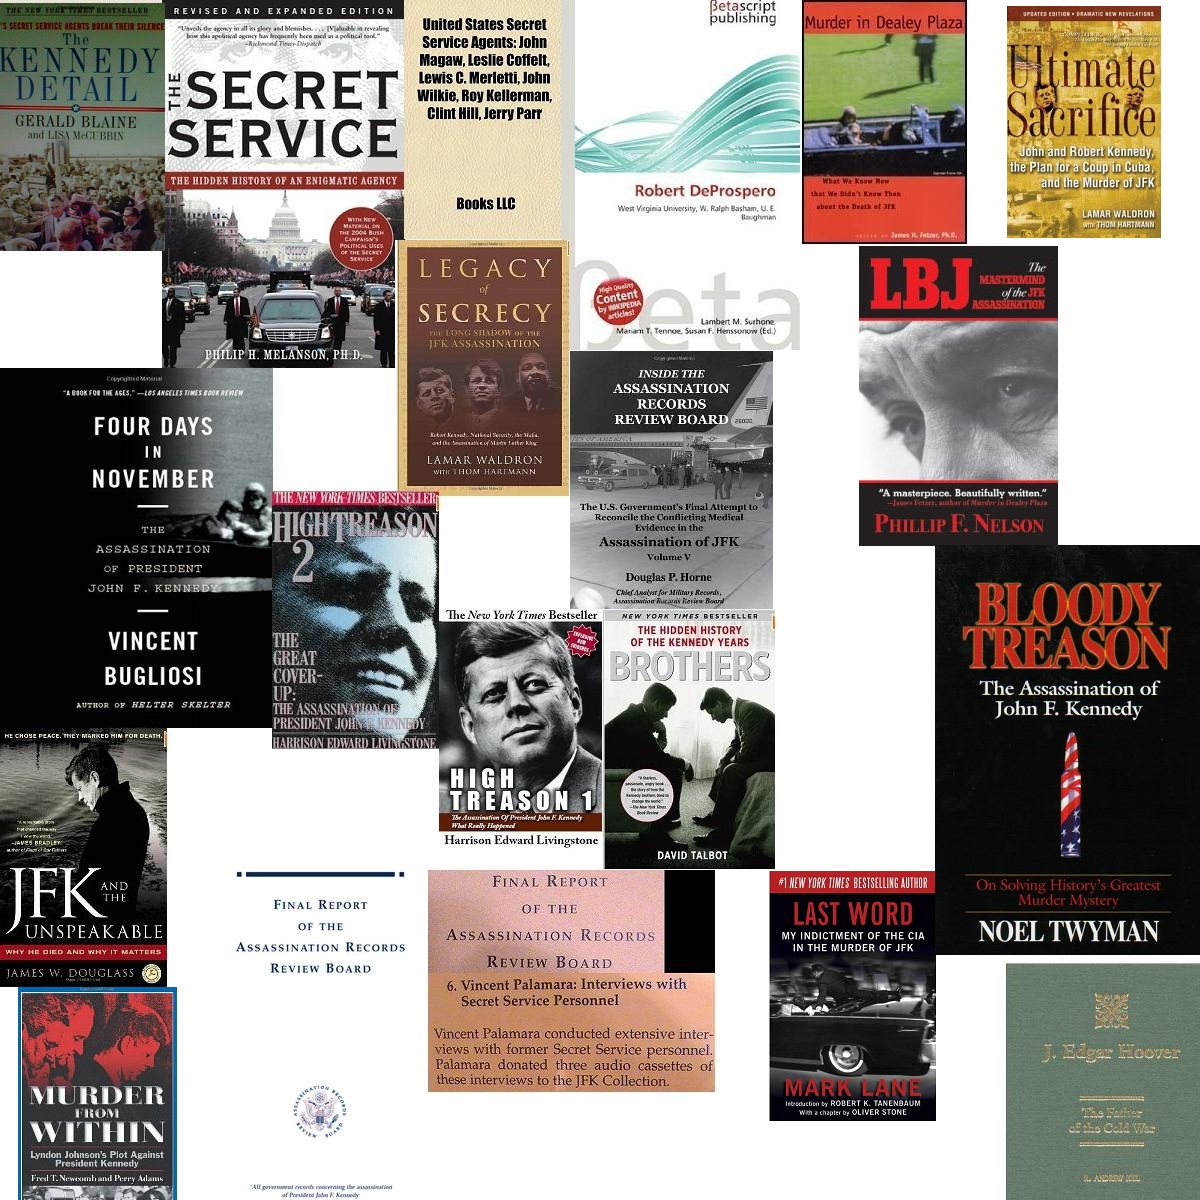 JUST SOME OF THE SECRET SERVICE/ RELATED BOOKS I AM IN